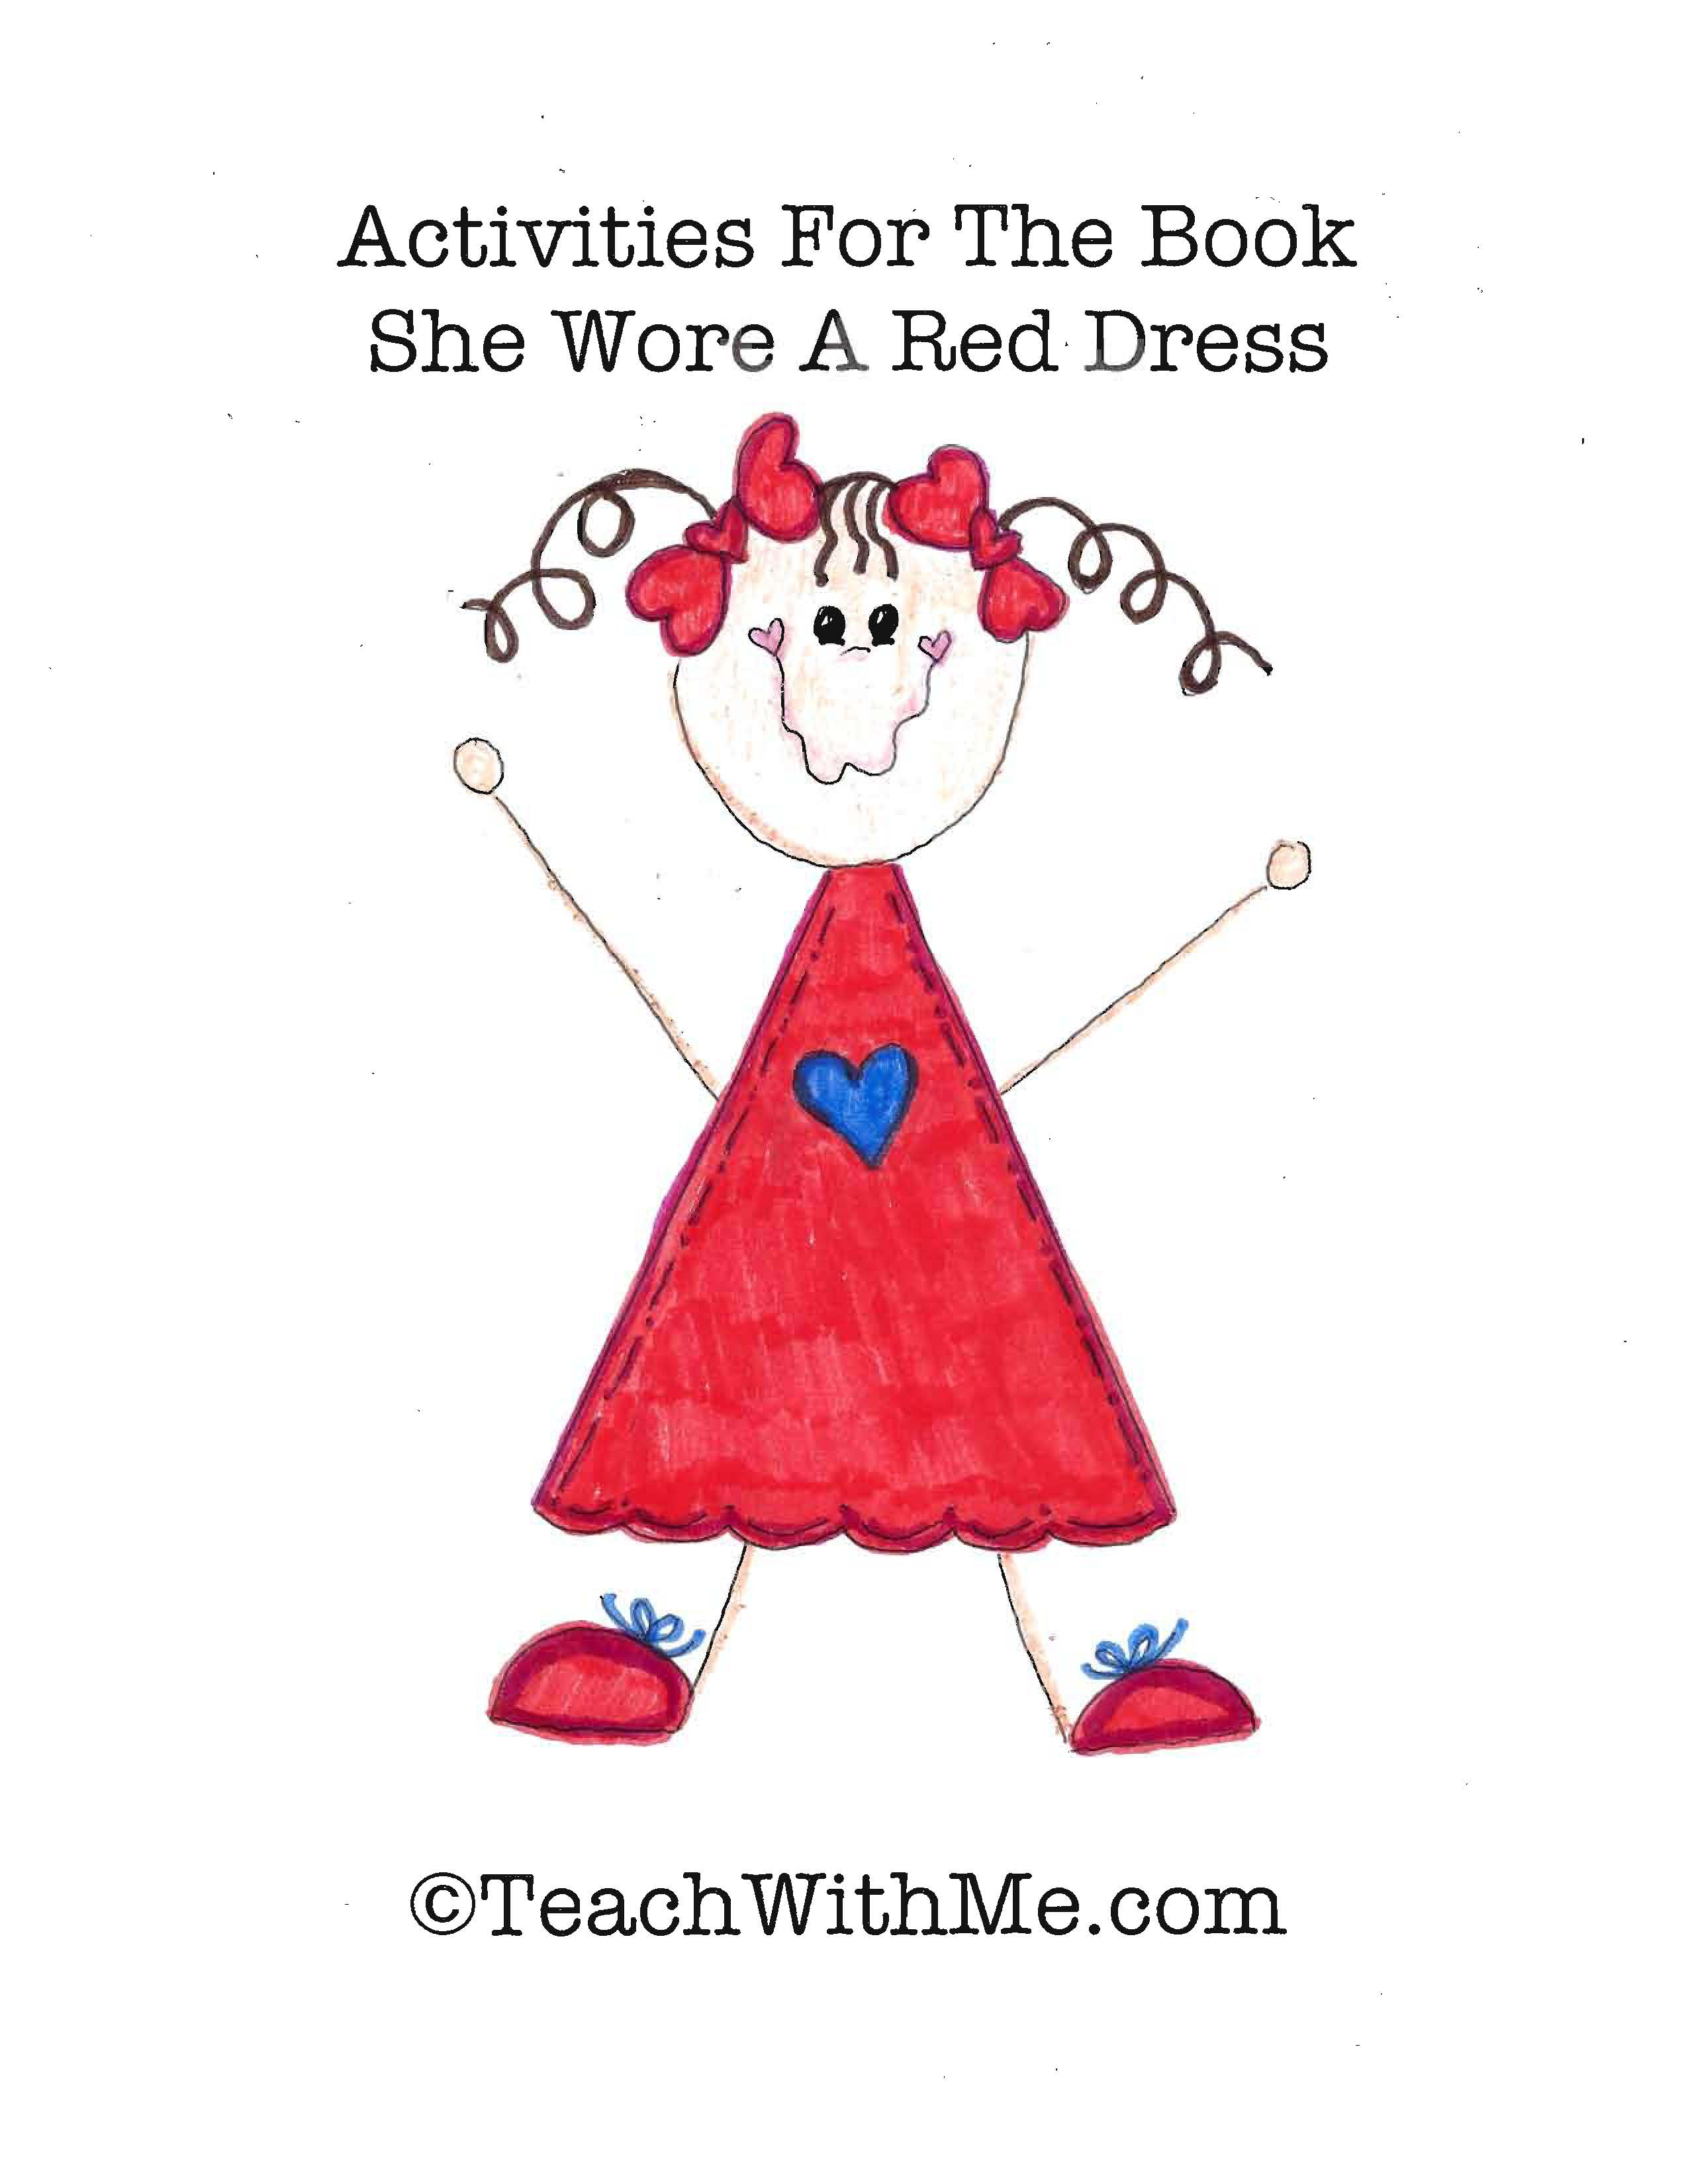 Mary wore a red dress, back to school ideas, writing prompts, ideas for class books, writing class books.